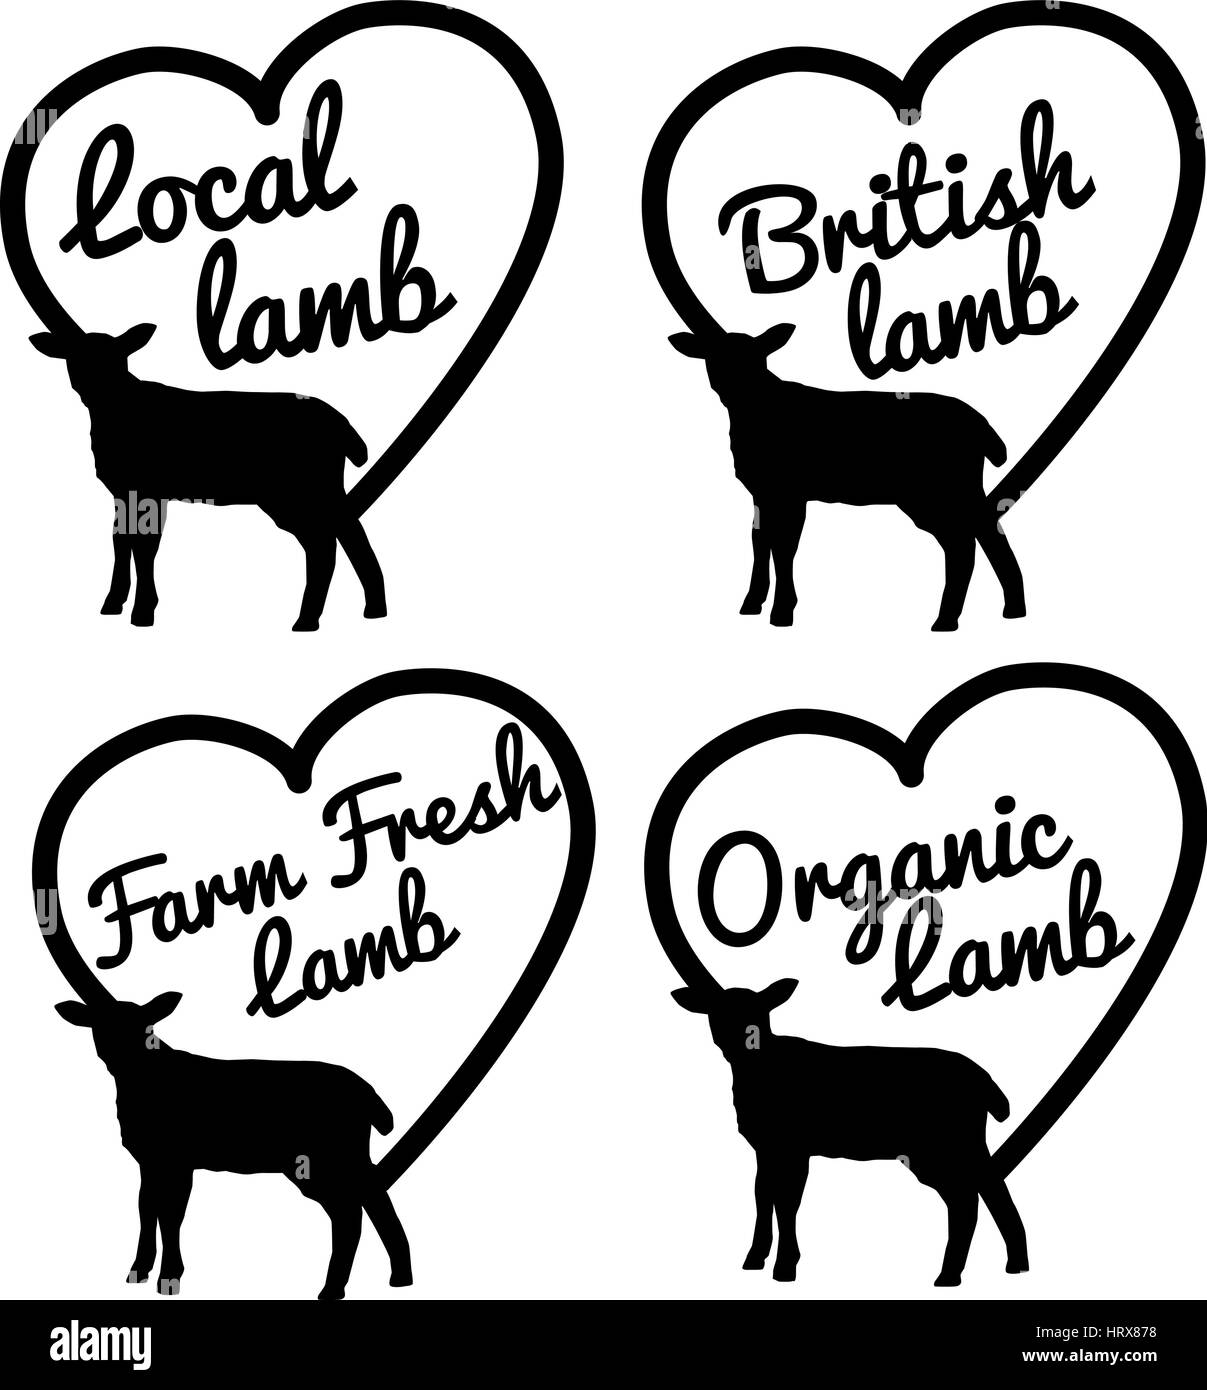 selection of vector and clip art symbols based on lamb - Stock Vector